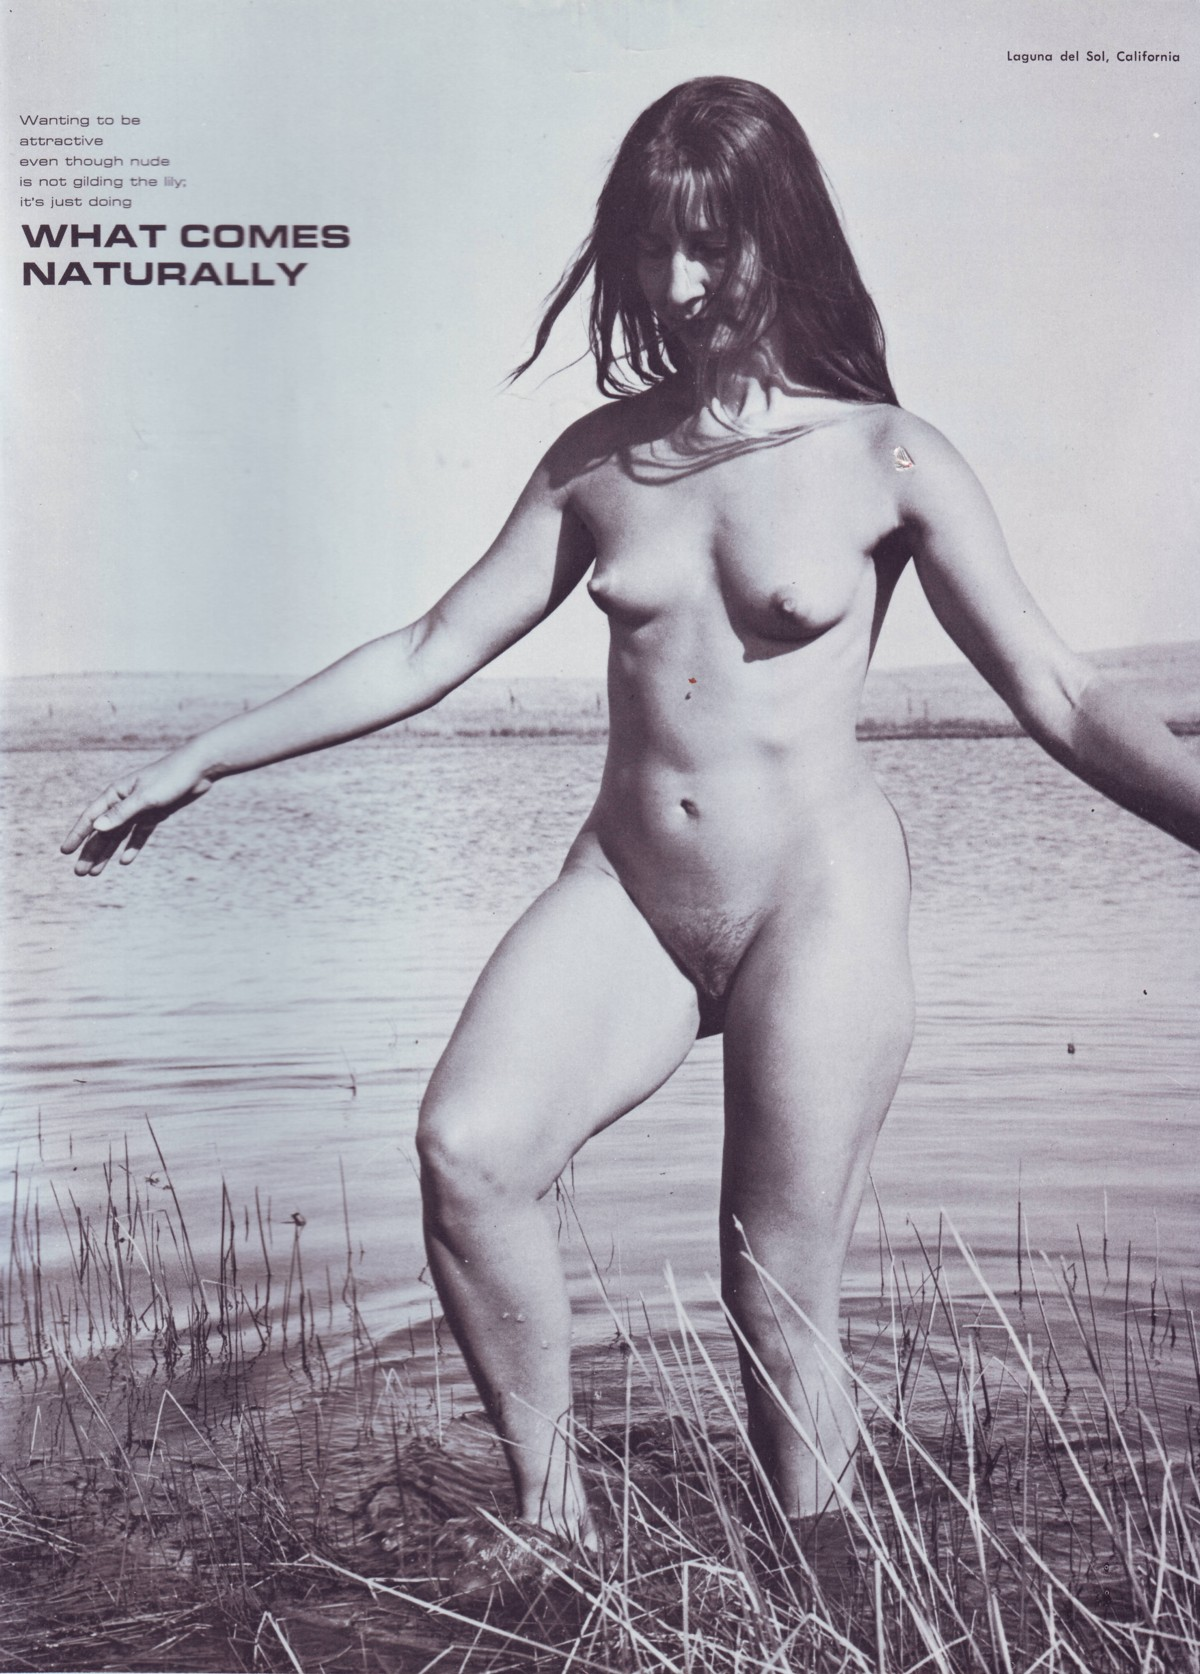 Vintage nudist magazine photos